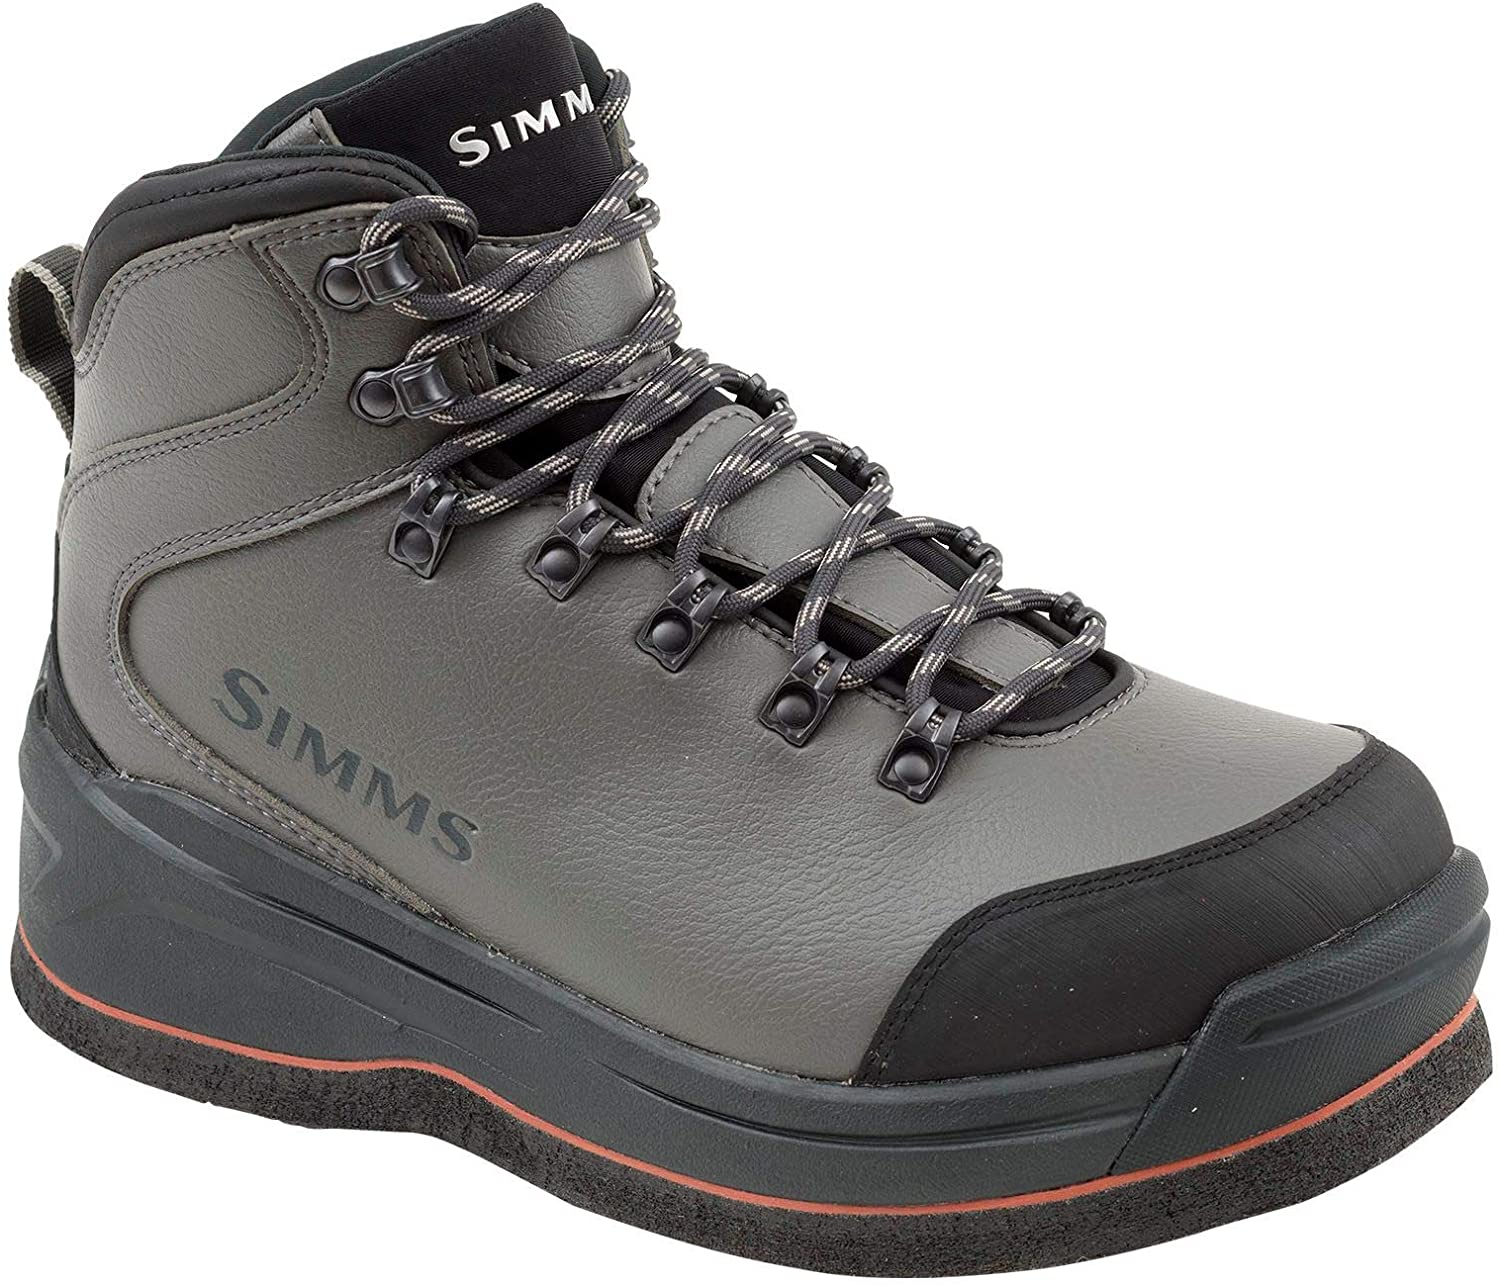 Simms Freestone Women's Wading Shies- Best Felt Wading Boots for Women